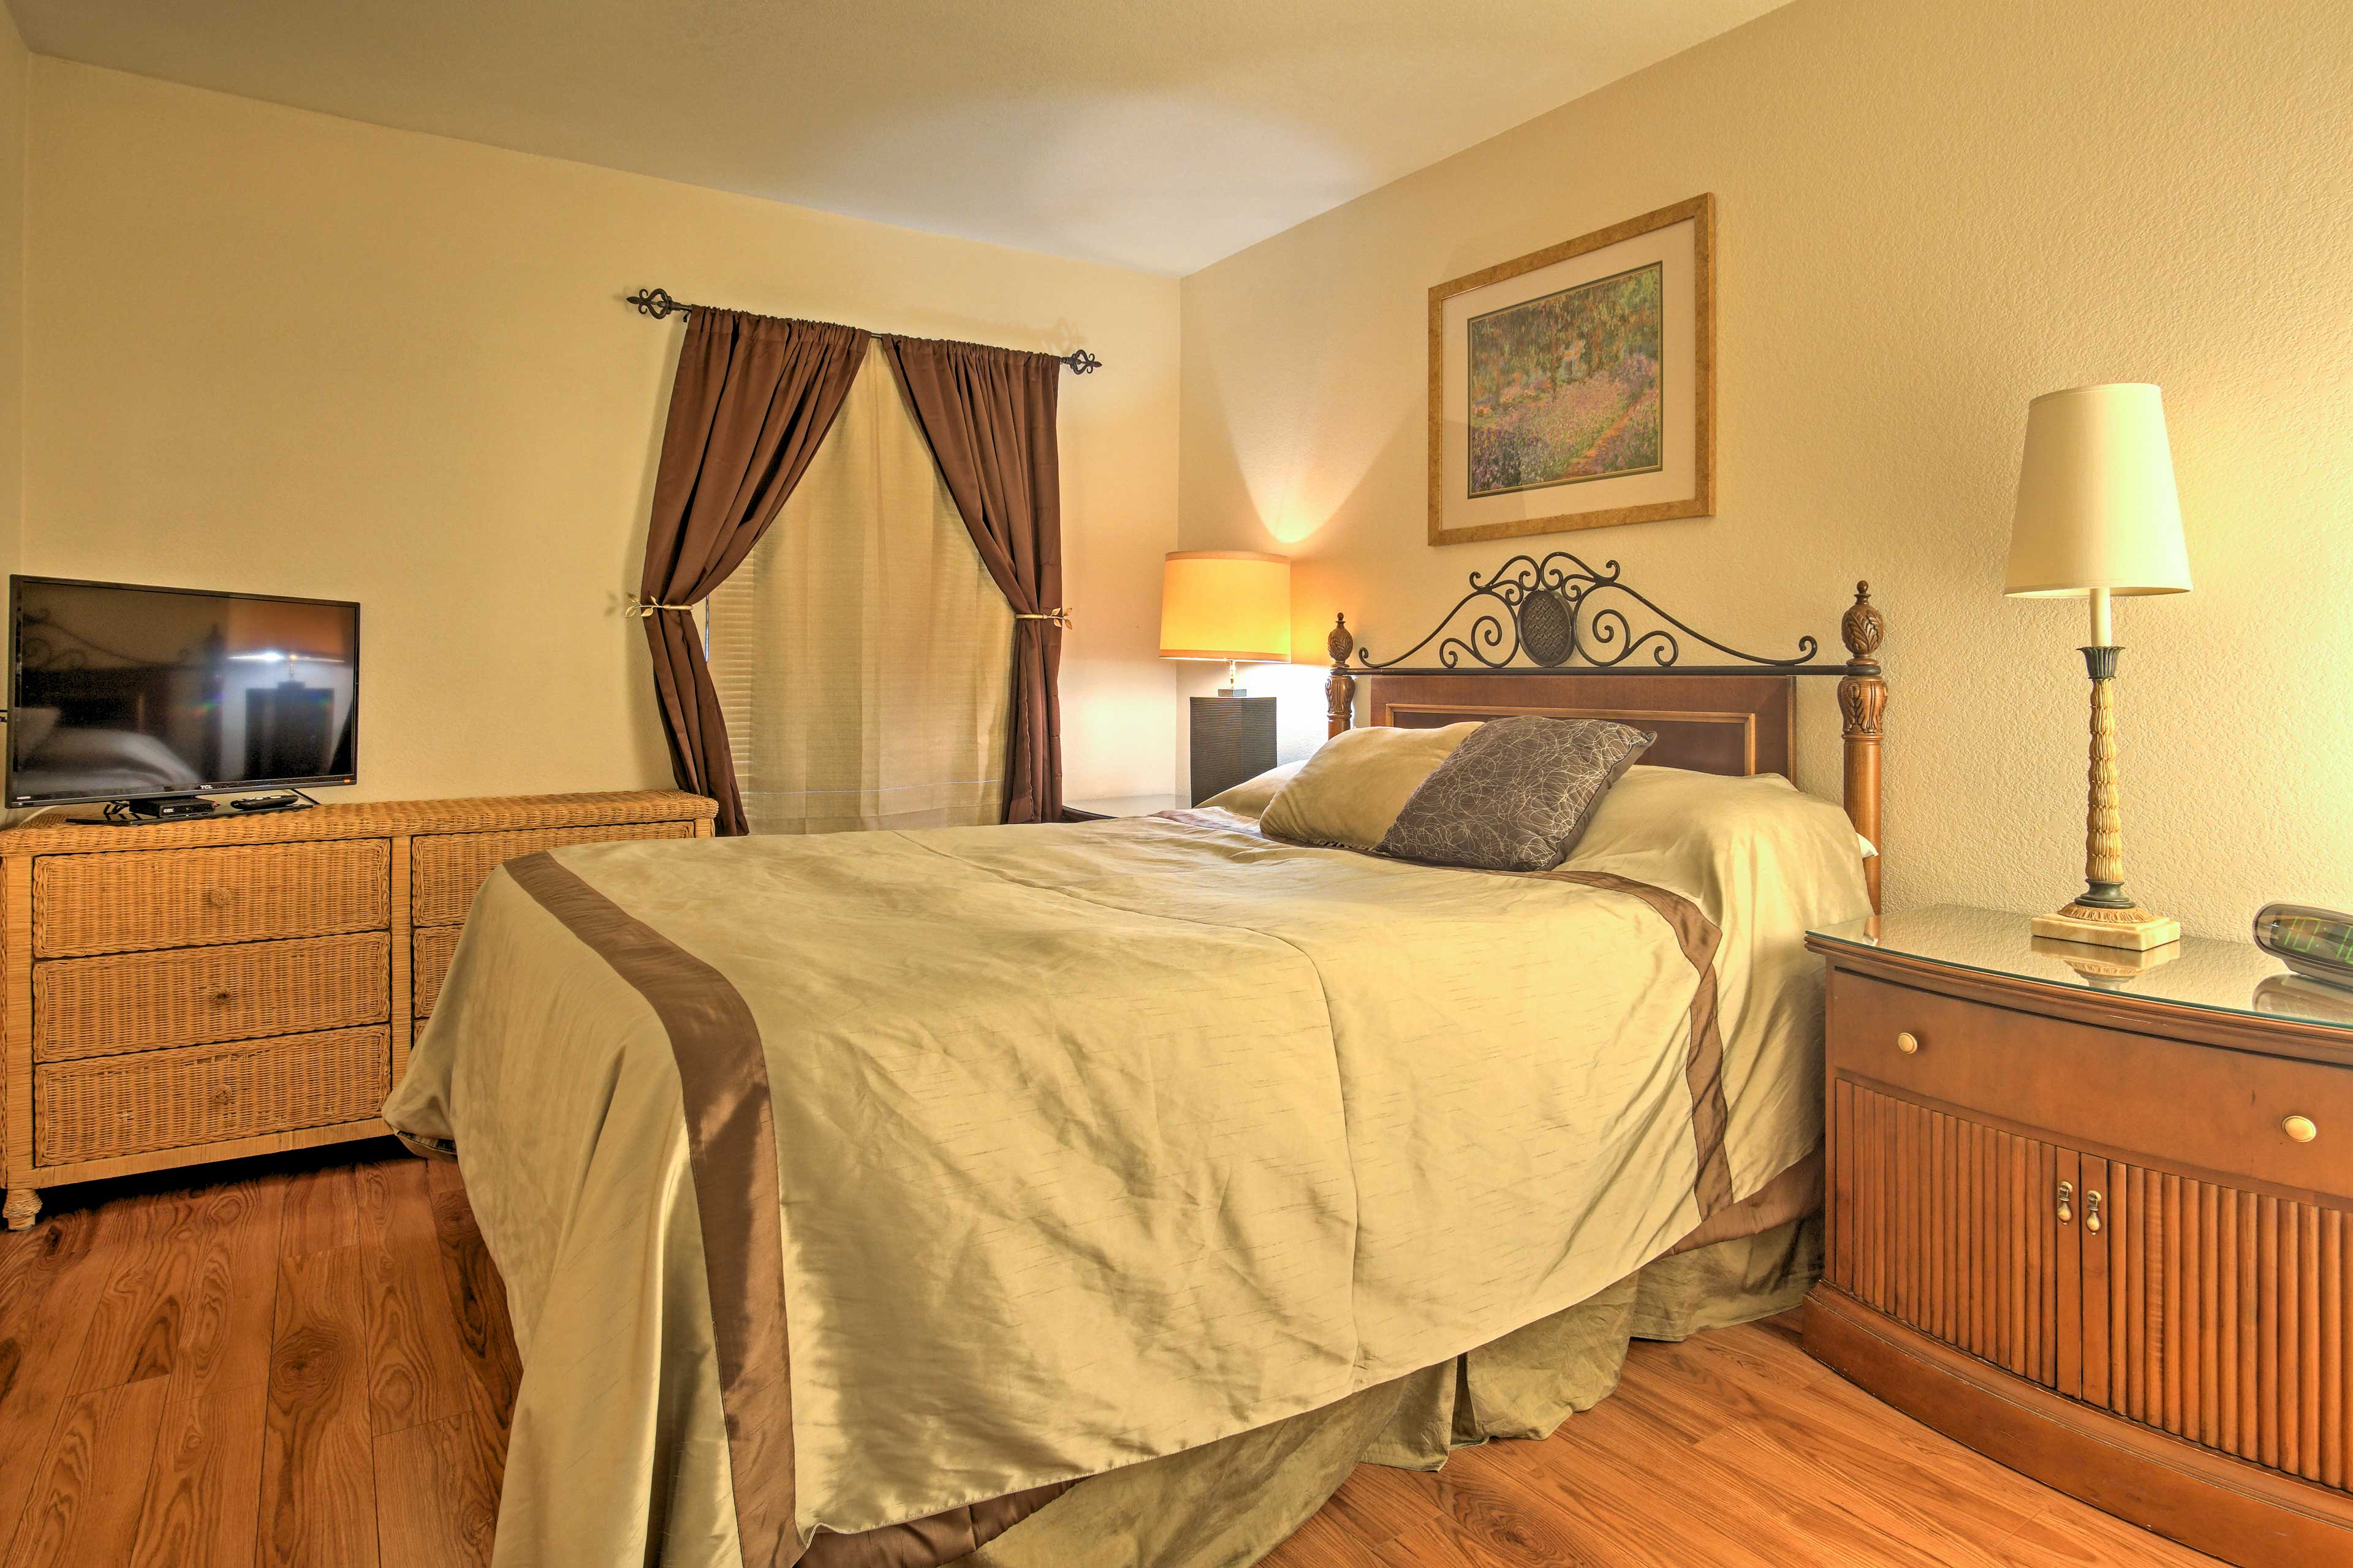 The plush sheets and comfortable queen bed will create blissful nights of sleep.